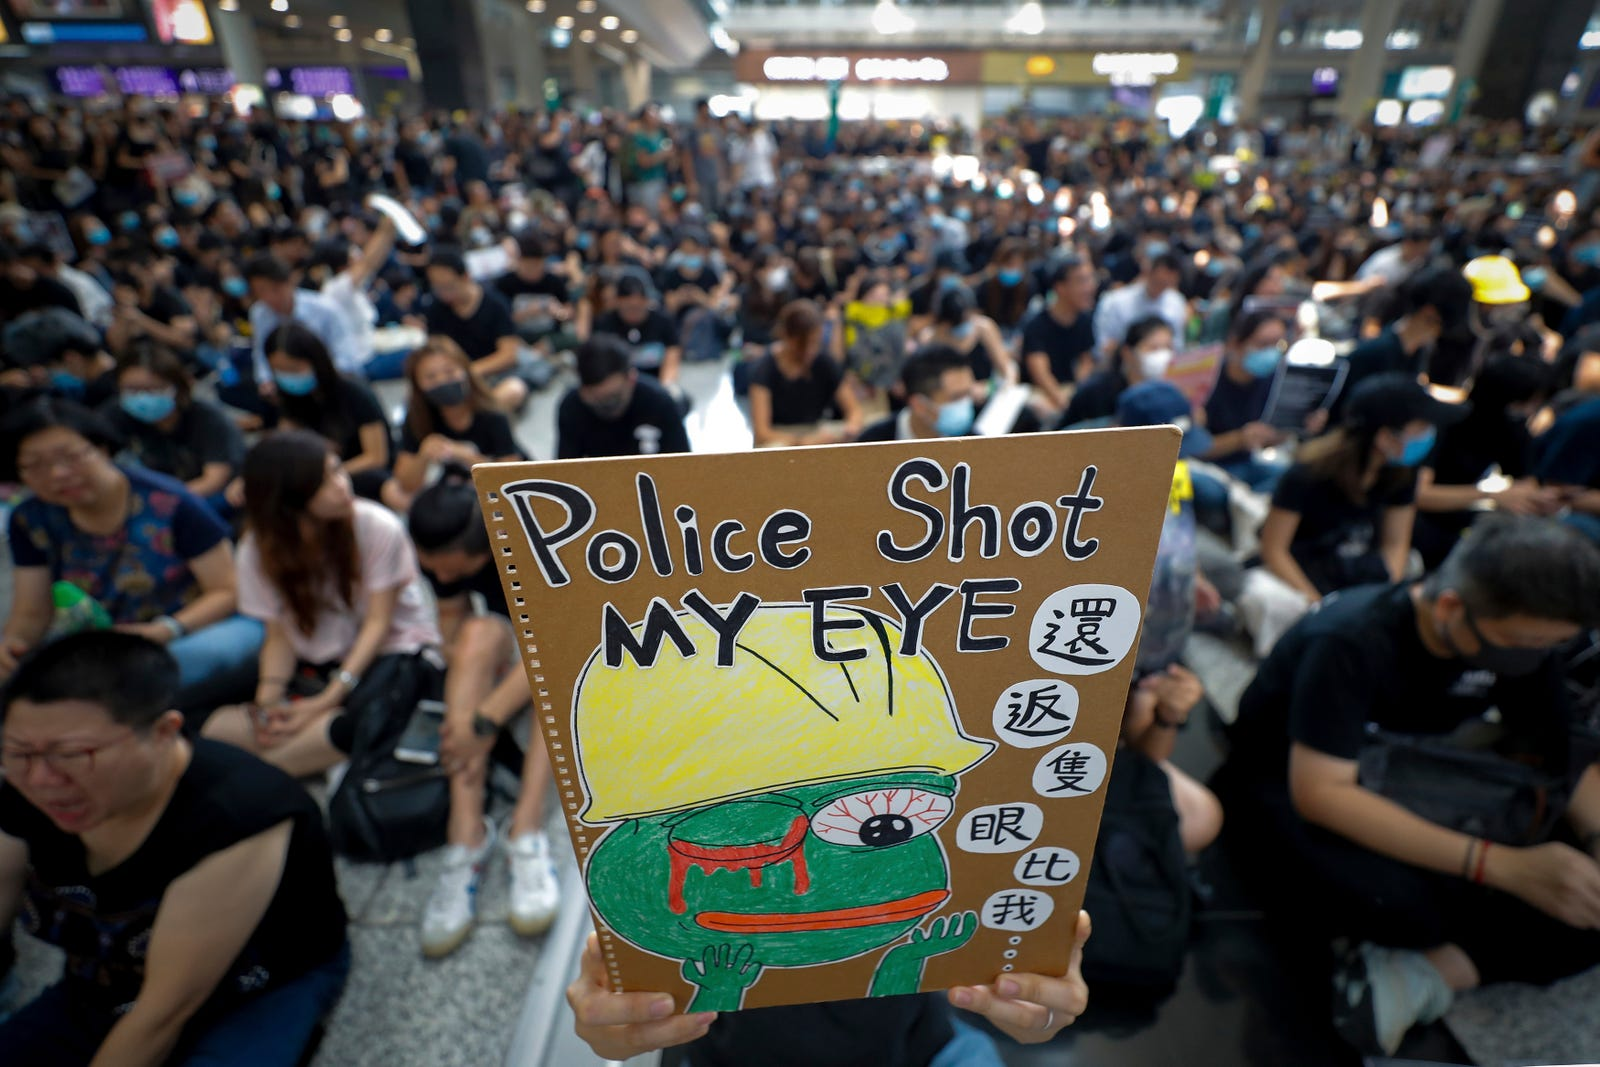 A protester displays a placard during a sit-in protest at the arrival hall of the Hong Kong International Airport in Hong Kong, Monday, Aug. 12, 2019.